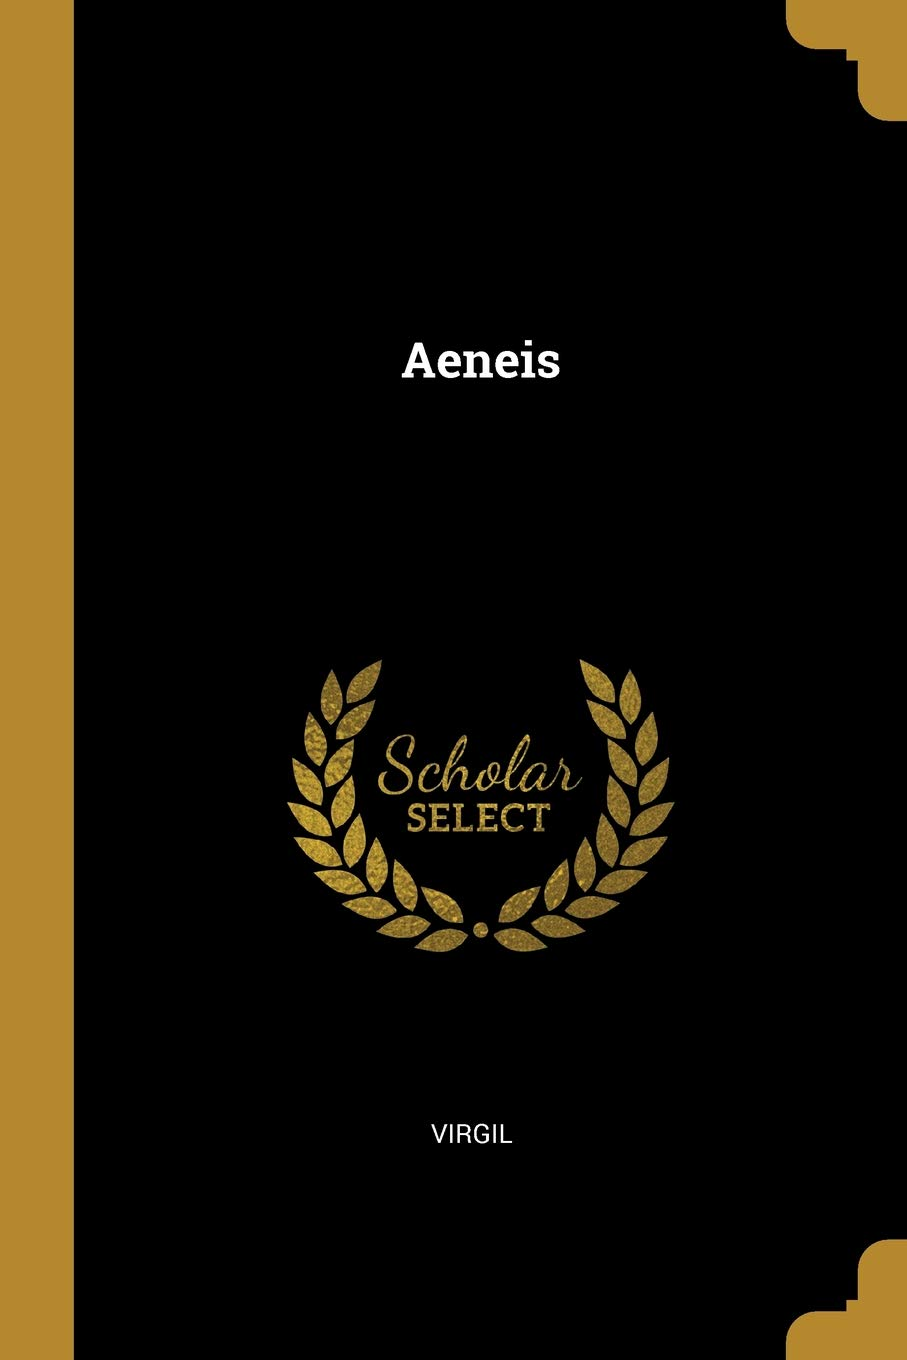 Aeneis Taschenbuch – 27. Juli 2018 Virgil WENTWORTH PR 0270651896 Non-Classifiable